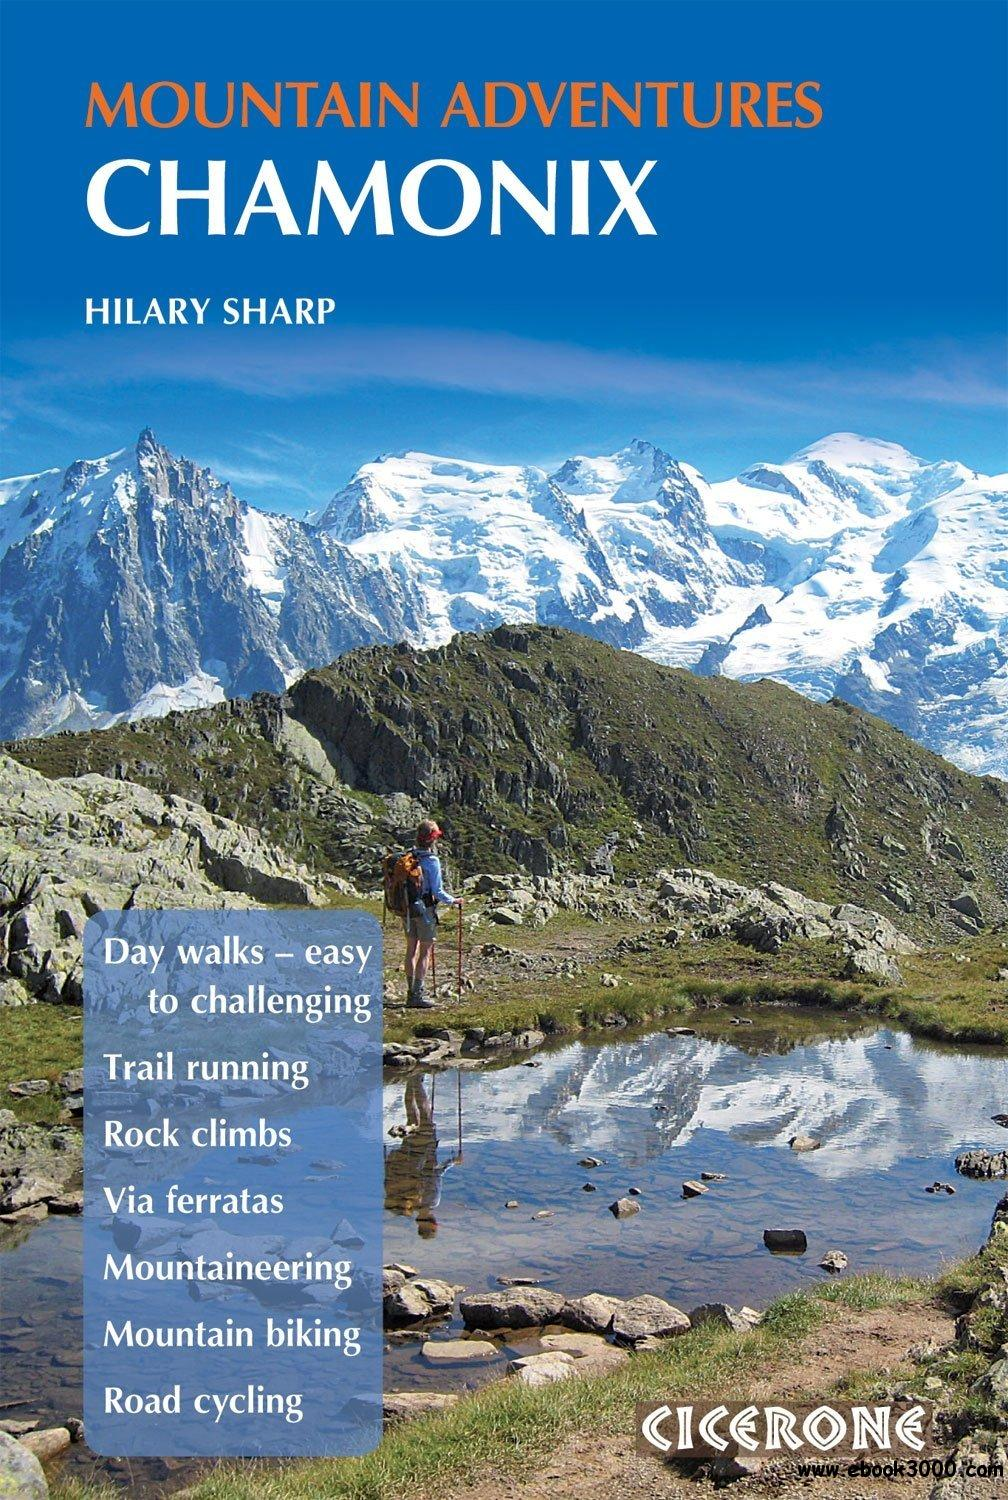 Chamonix Mountain Adventures (Cicerone Mountain Guide) download dree